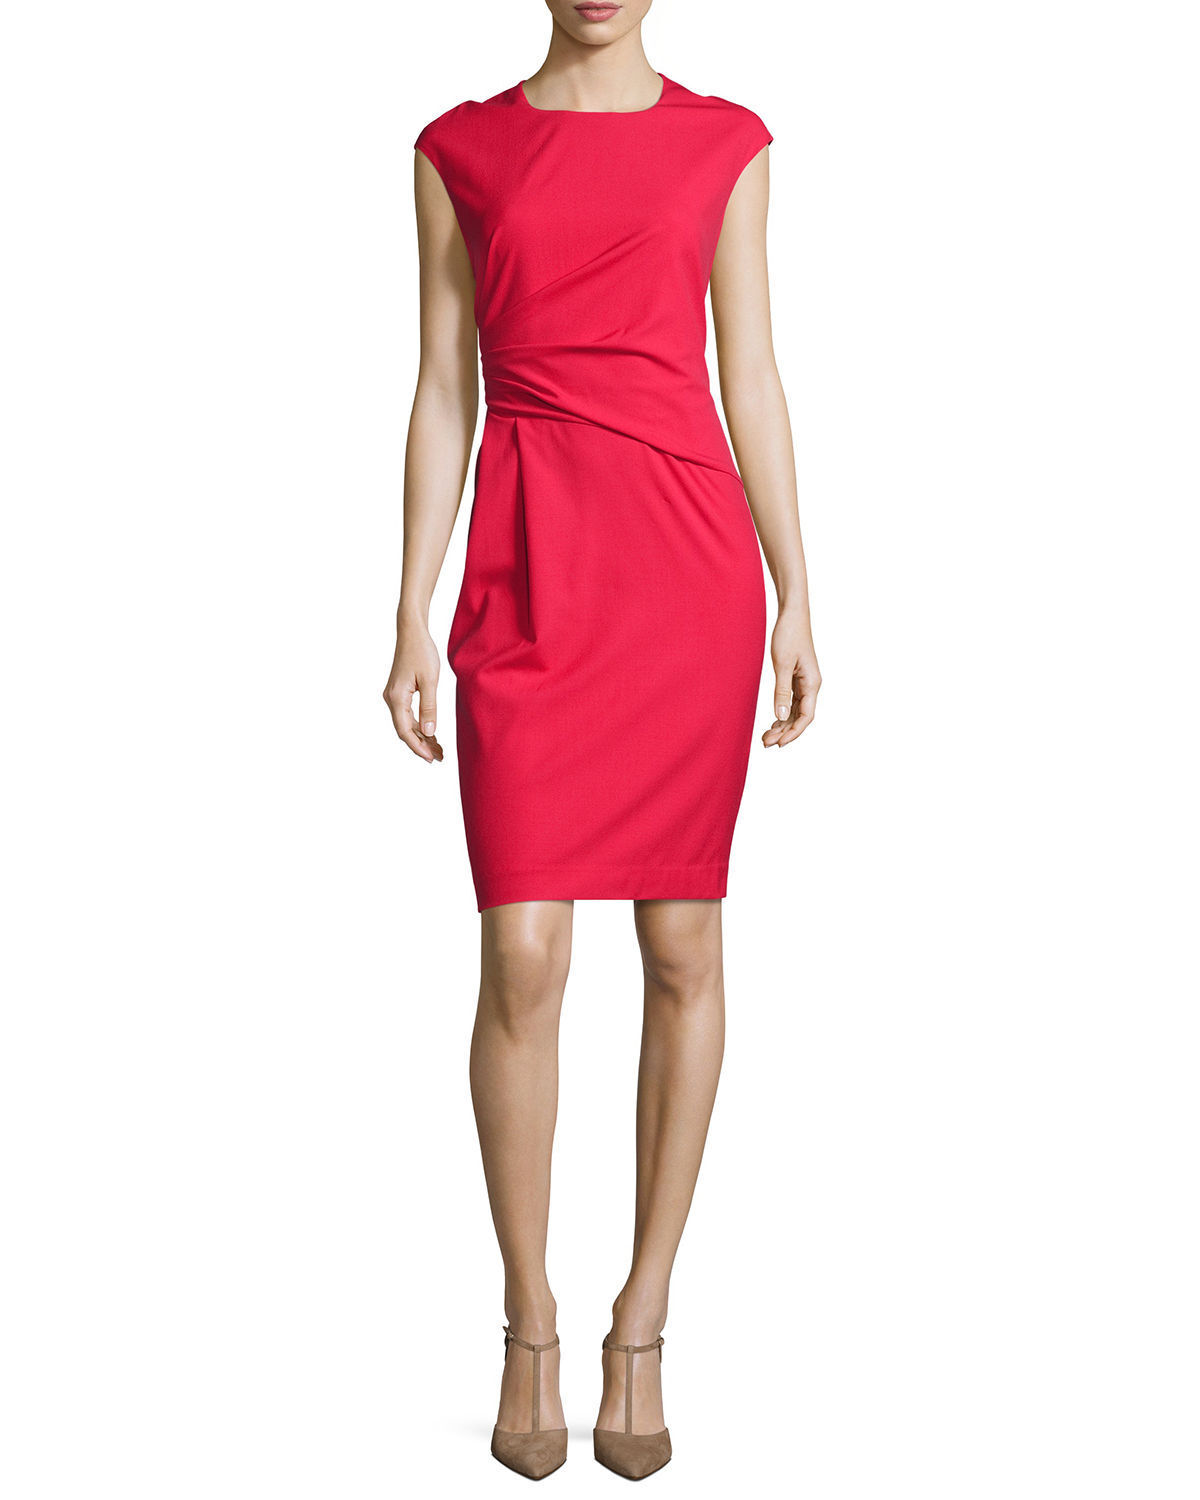 Lafayette 148 New York Size 10 Red Spark Side-Ruched Sheath Dress Msrp  428.00